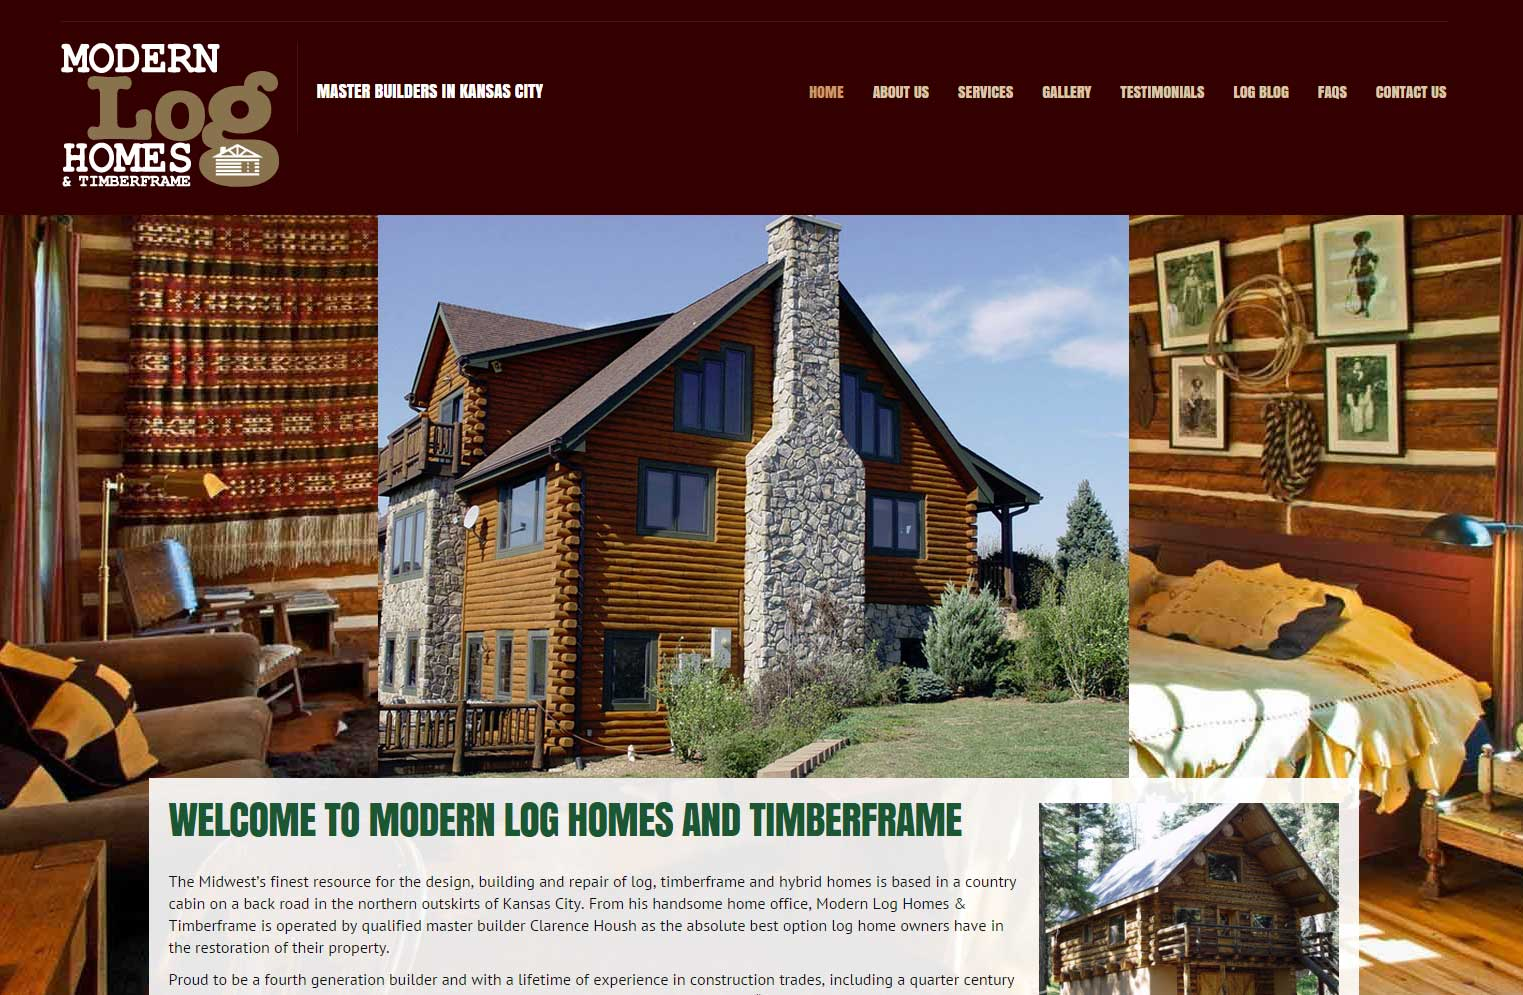 Modern Log Homes & Timberframe in KC